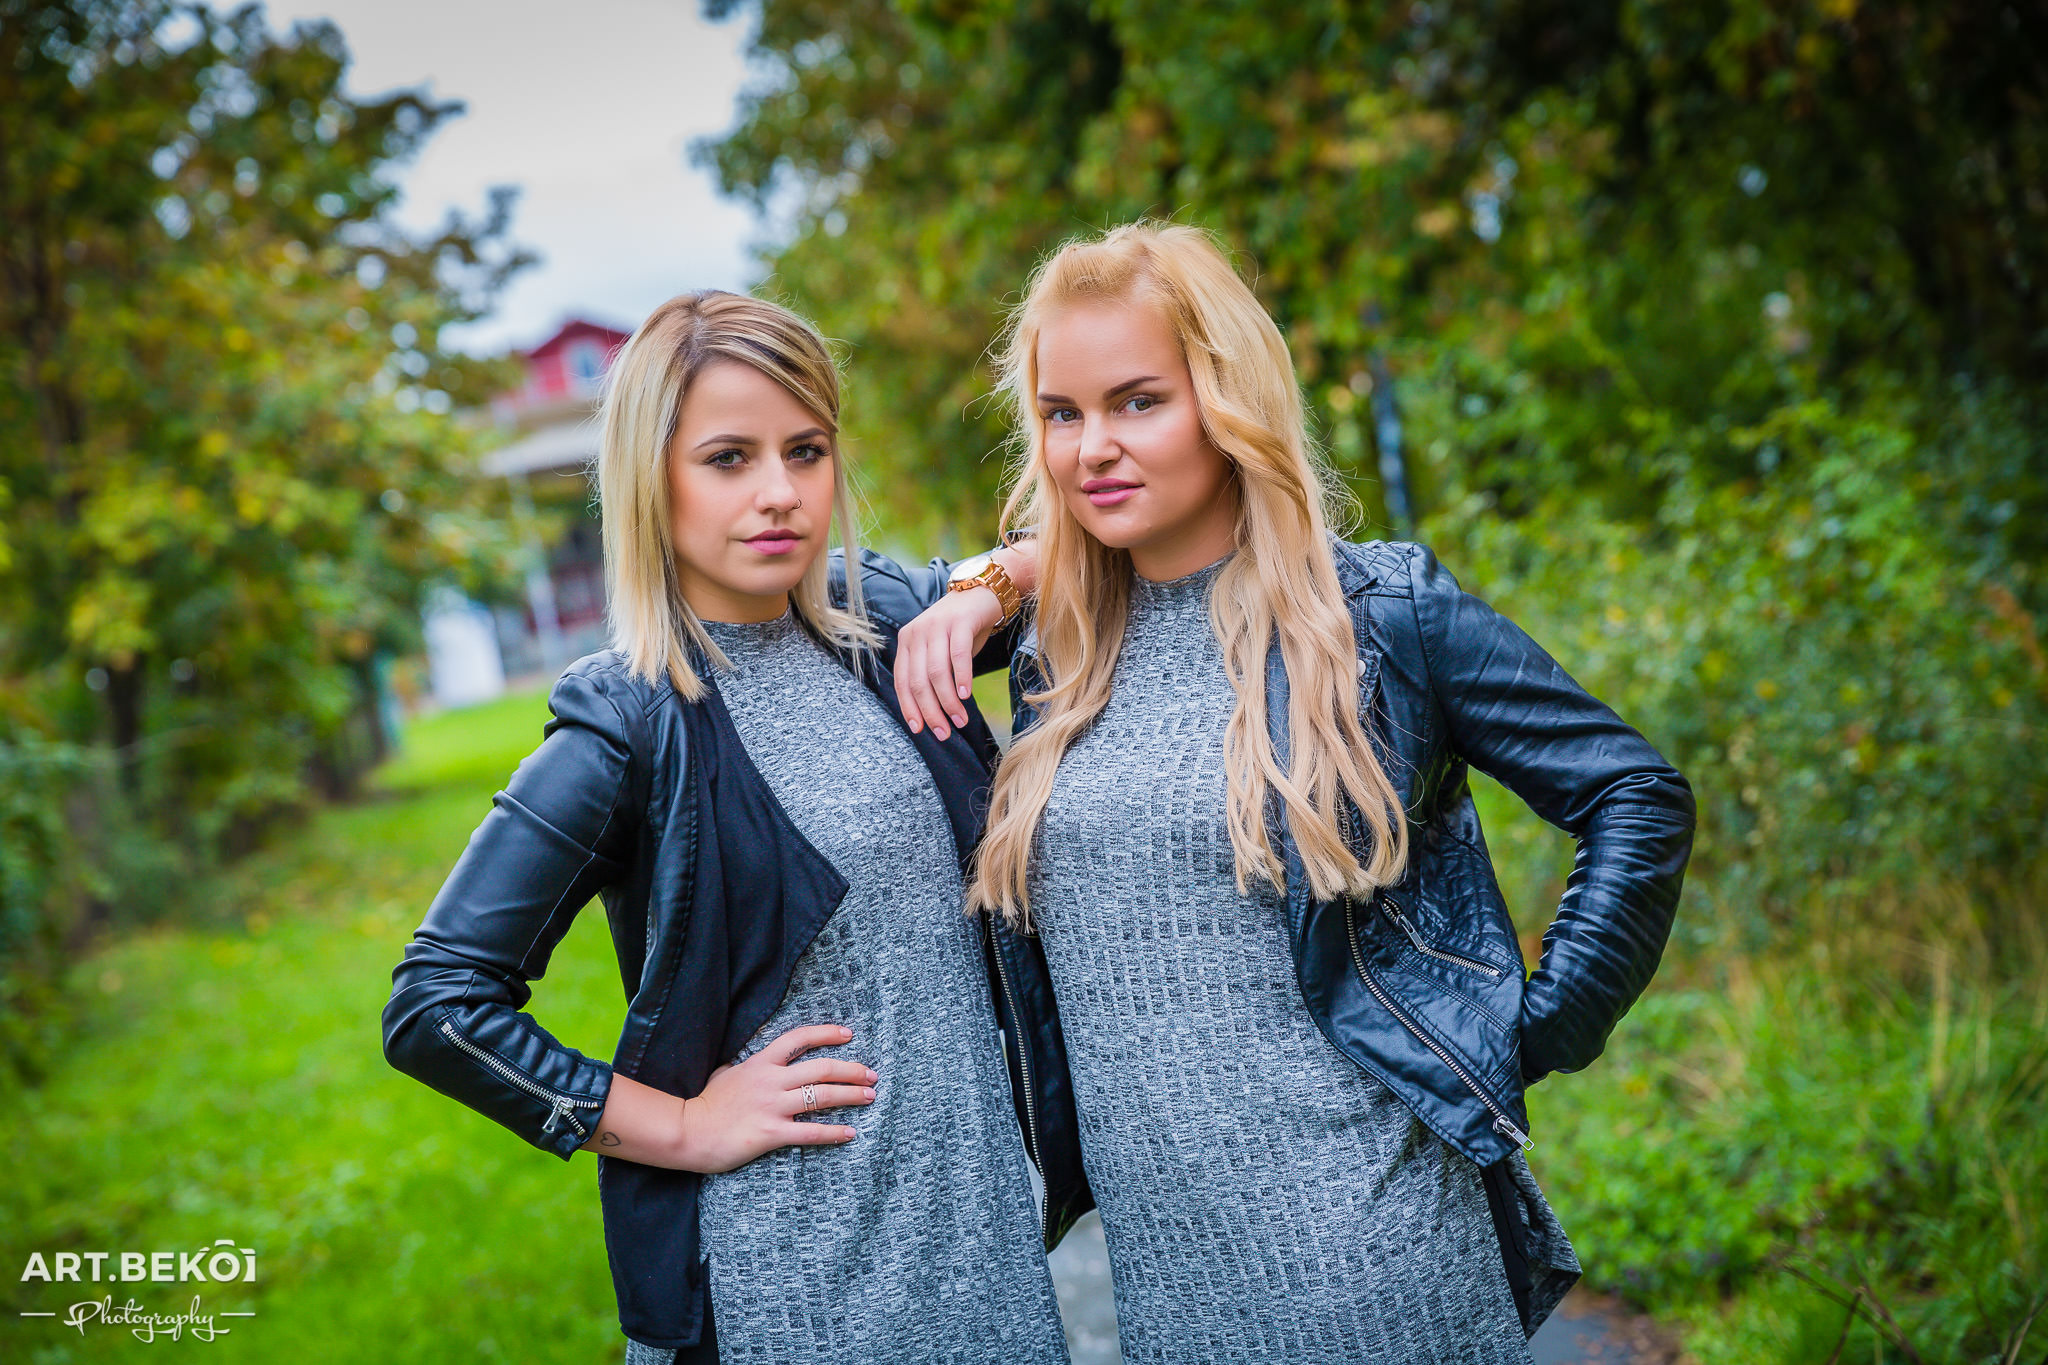 Beste Freundinnen – Bestfriends Shooting – Vanice & Laura